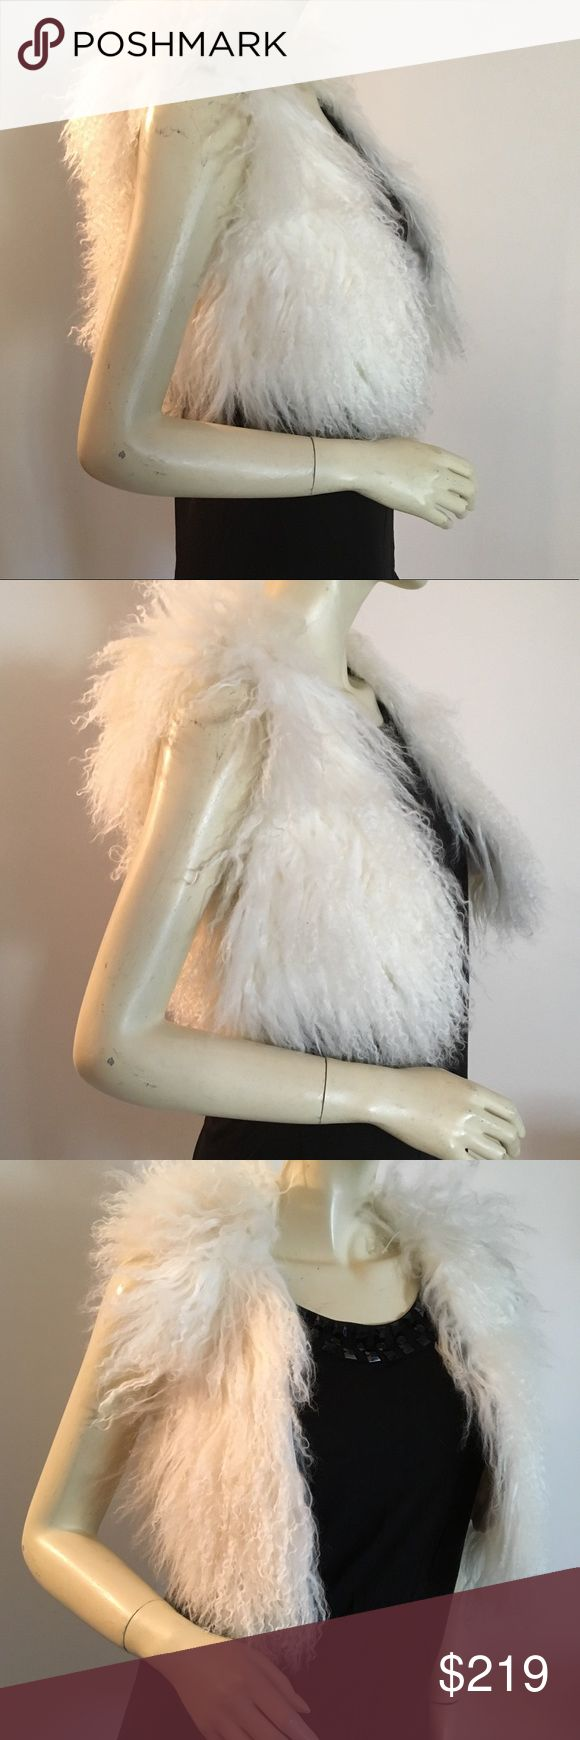 "NWT real fur vest S Mongolian lamb fur vest with Hook & eye closure. Fully Lined in polyester.  Size Small measurements: 32"" bust; 19"" length from shoulder to hem. NWT Adrienne Landau Jackets & Coats Vests"